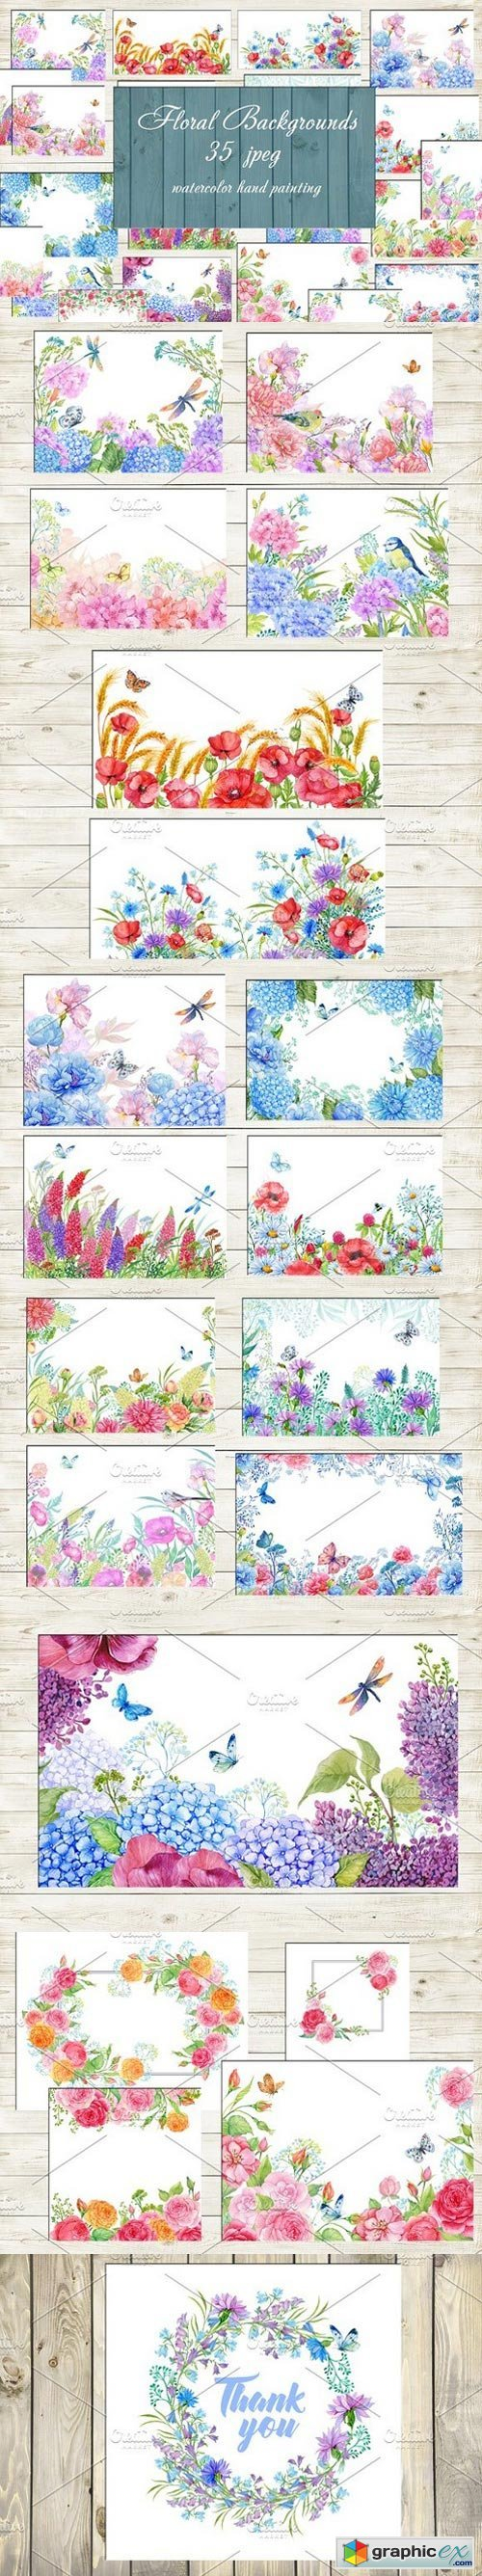 Floral backgrounds watercolor